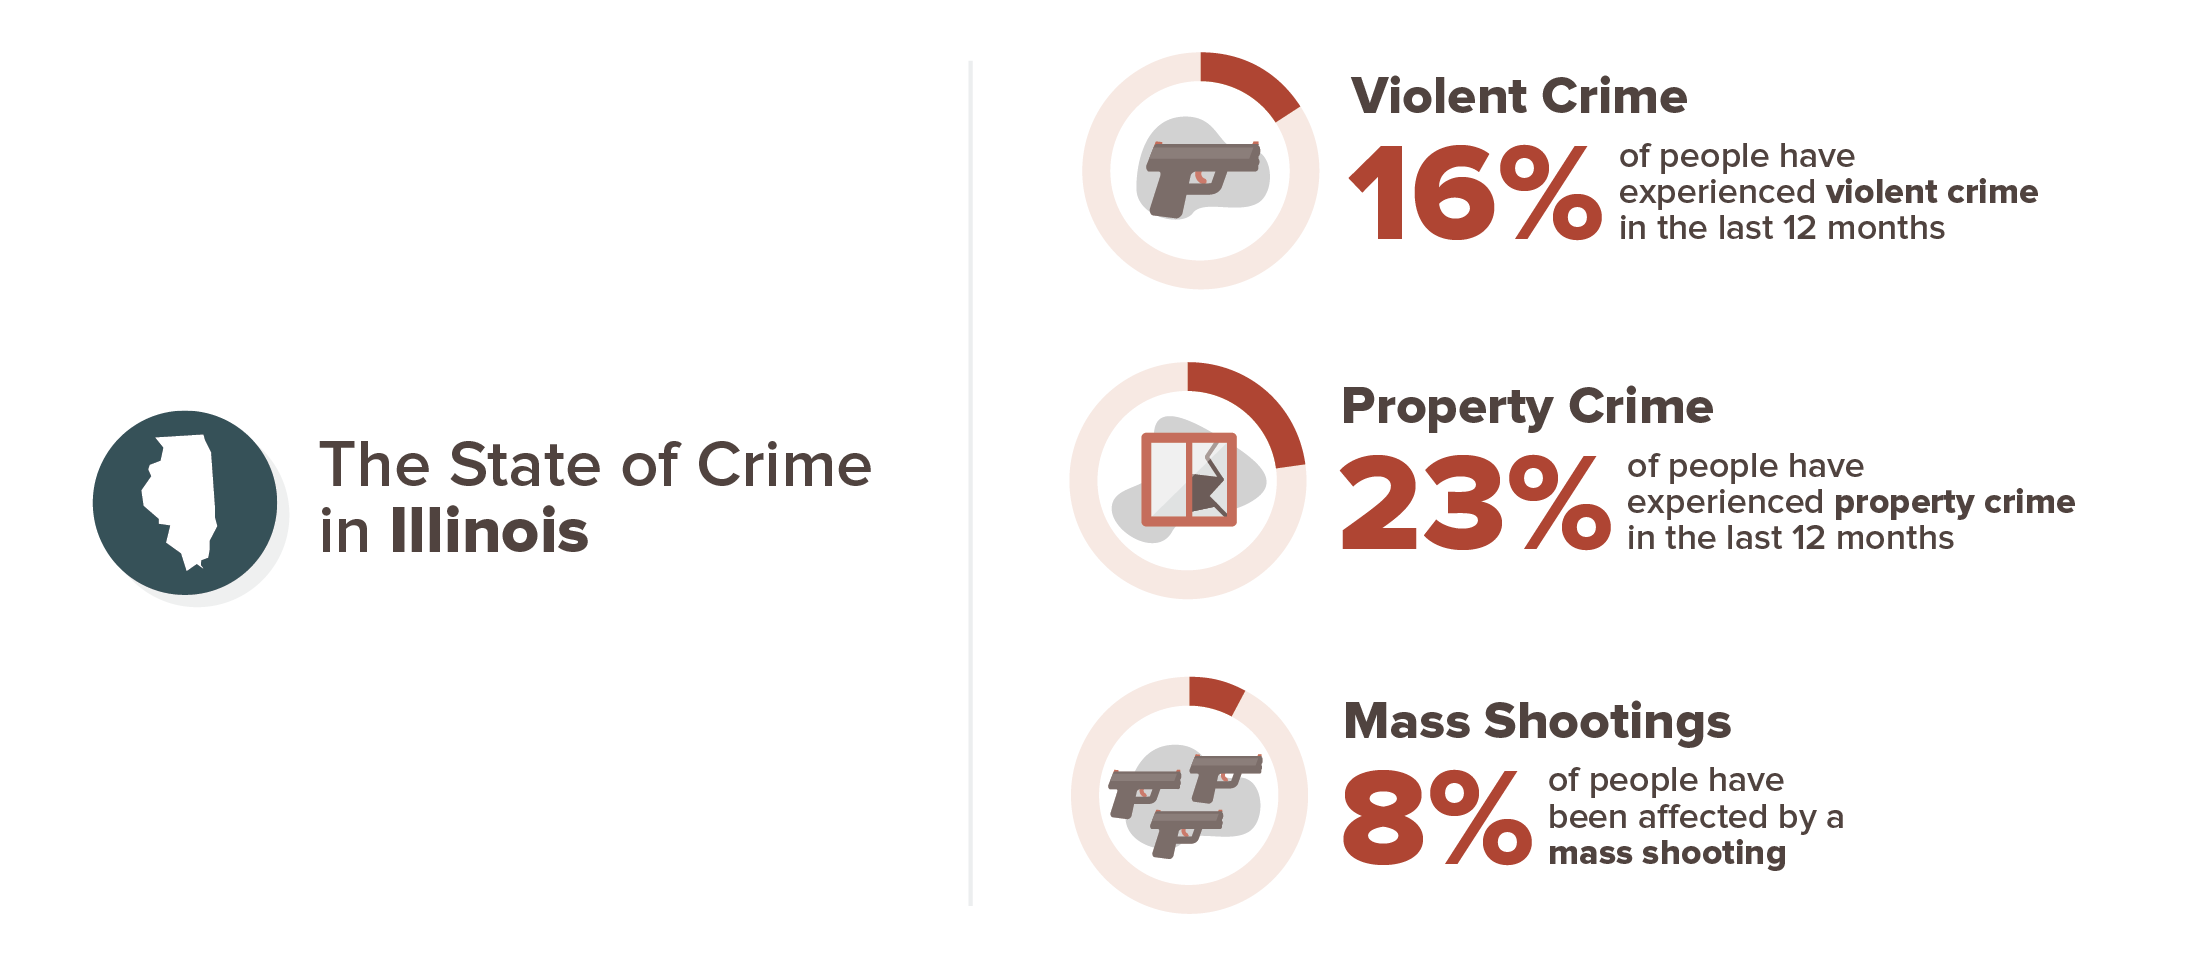 Illinois crime experience infographic; 16% violent crime, 23% property crime, 8% mass shooting